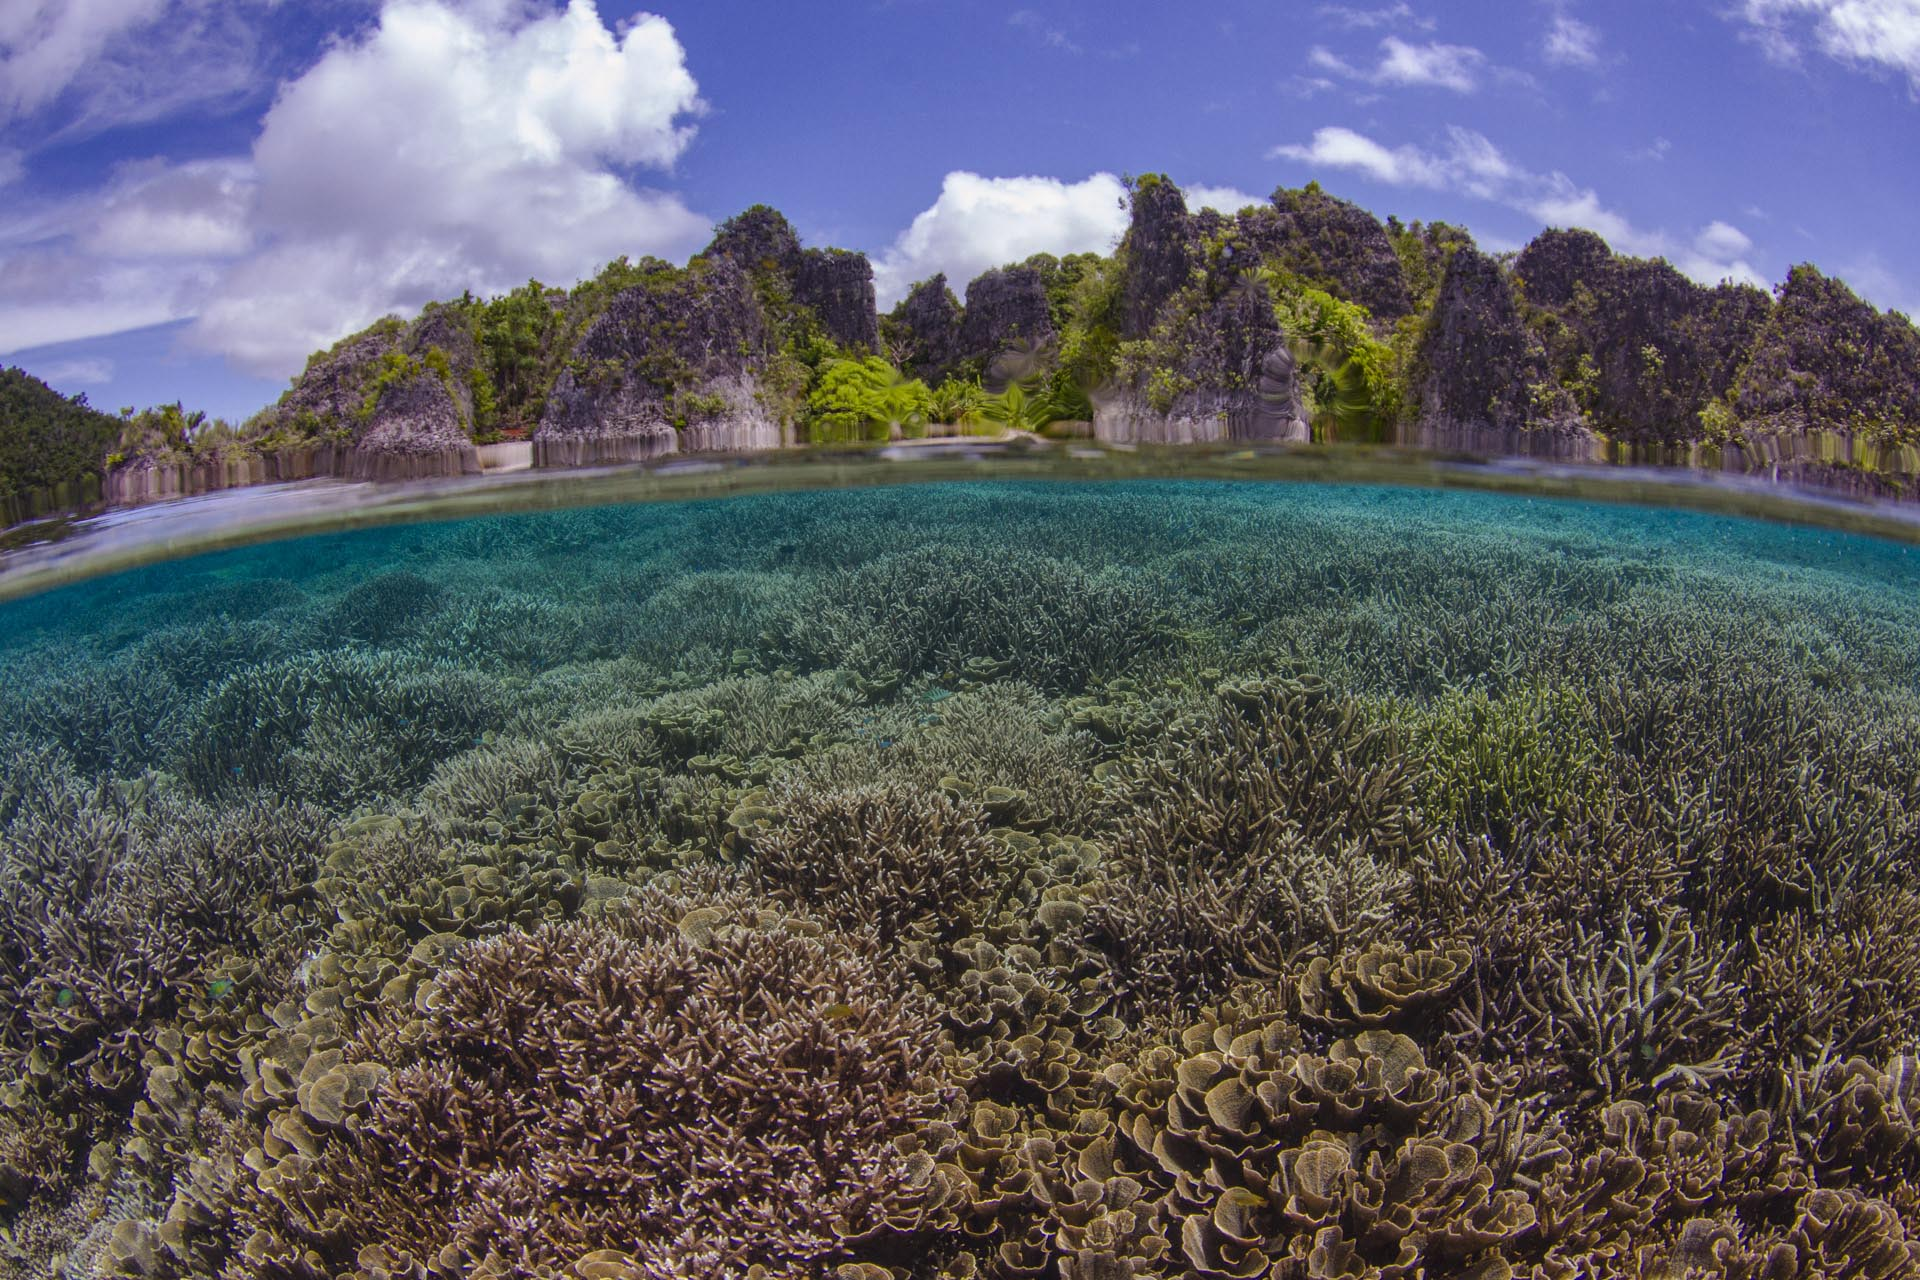 over under perspective of coral reef with islands above